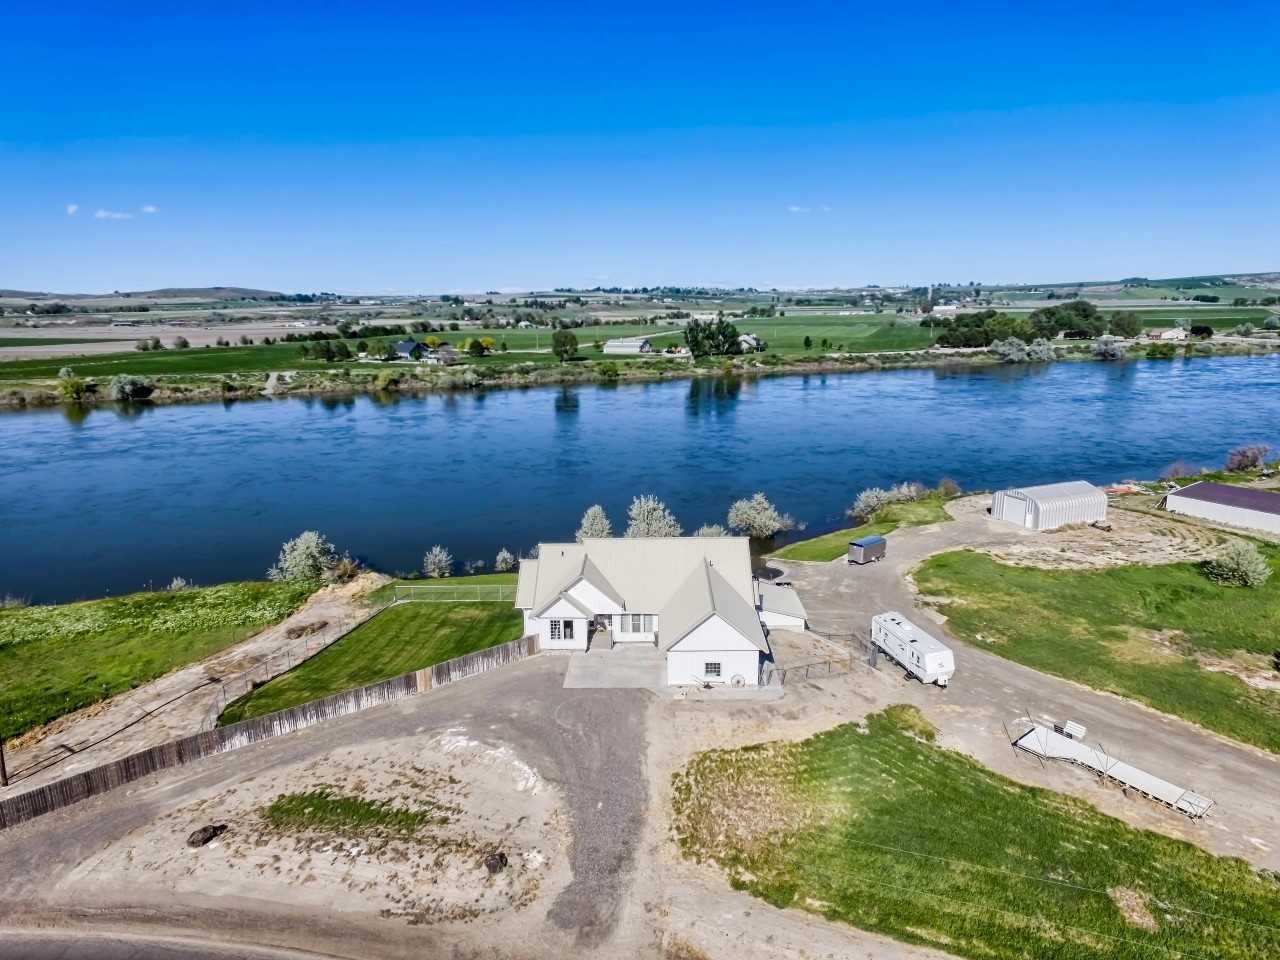 Single Family Home for Sale at 6510 Old Bruneau Hwy 6510 Old Bruneau Hwy Marsing, Idaho 83639